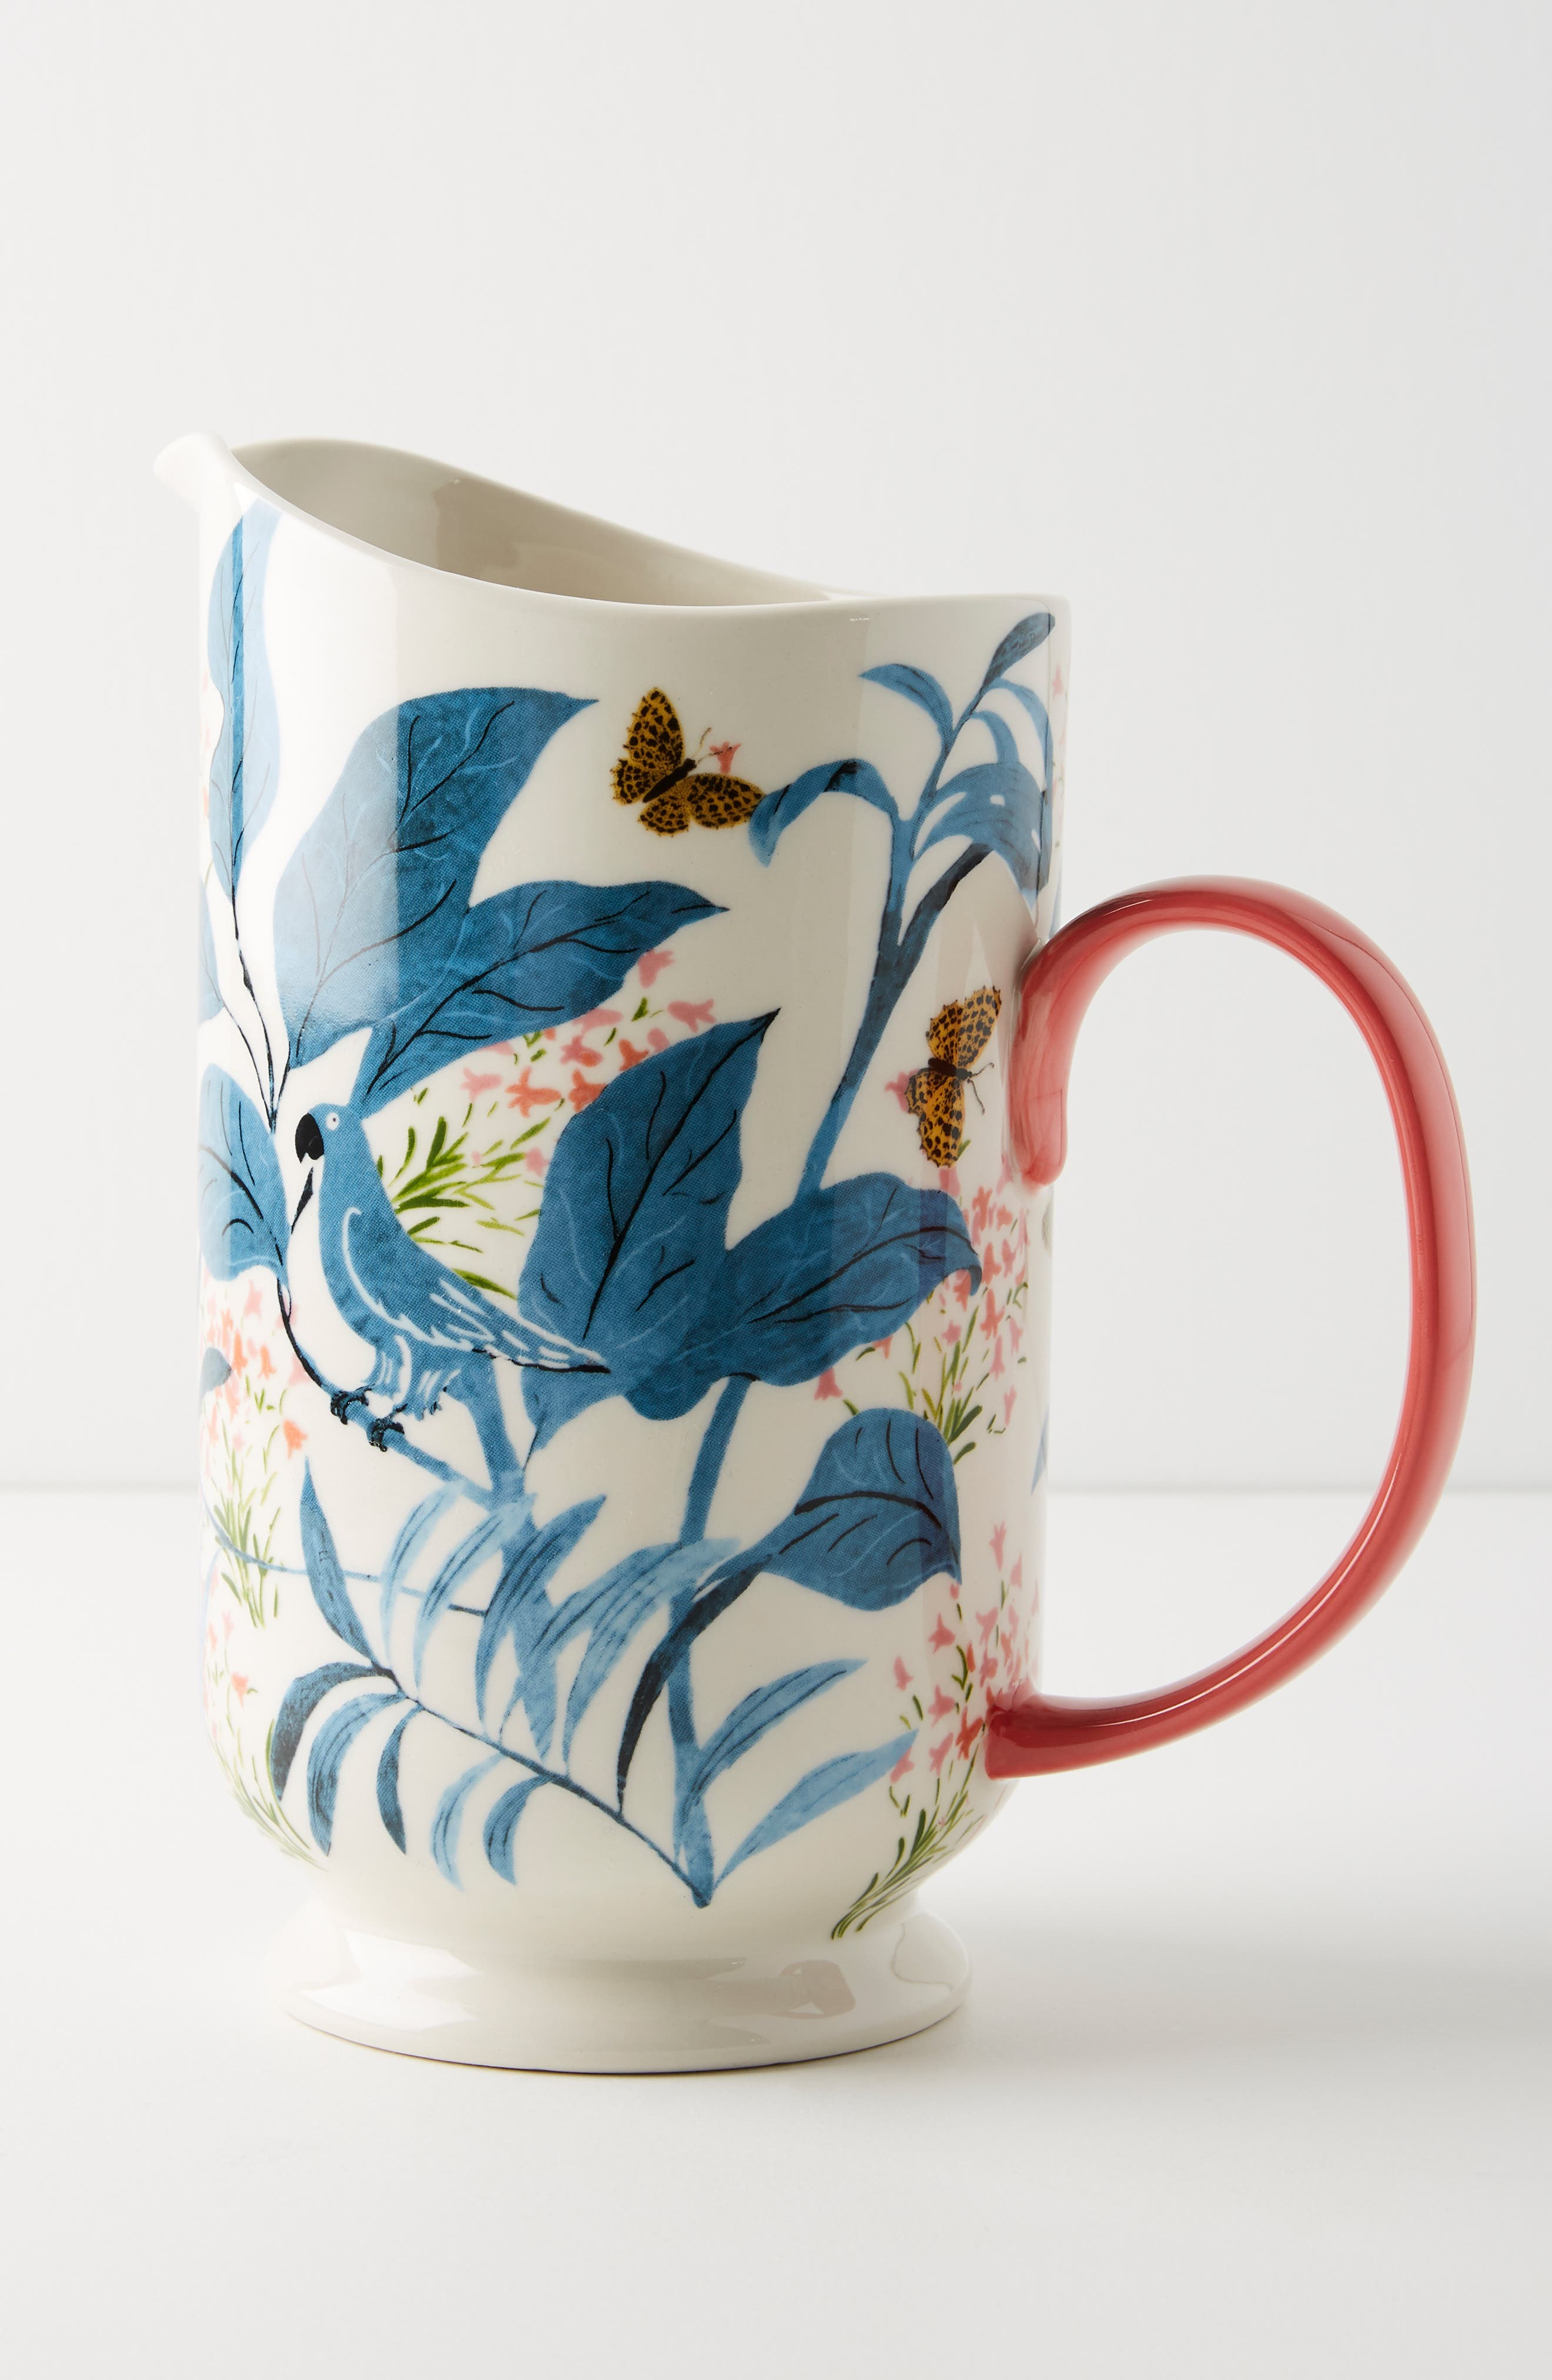 ANTHROPOLOGIE,                             Paule Marrot Butterfly Pitcher,                             Main thumbnail 1, color,                             BLUE